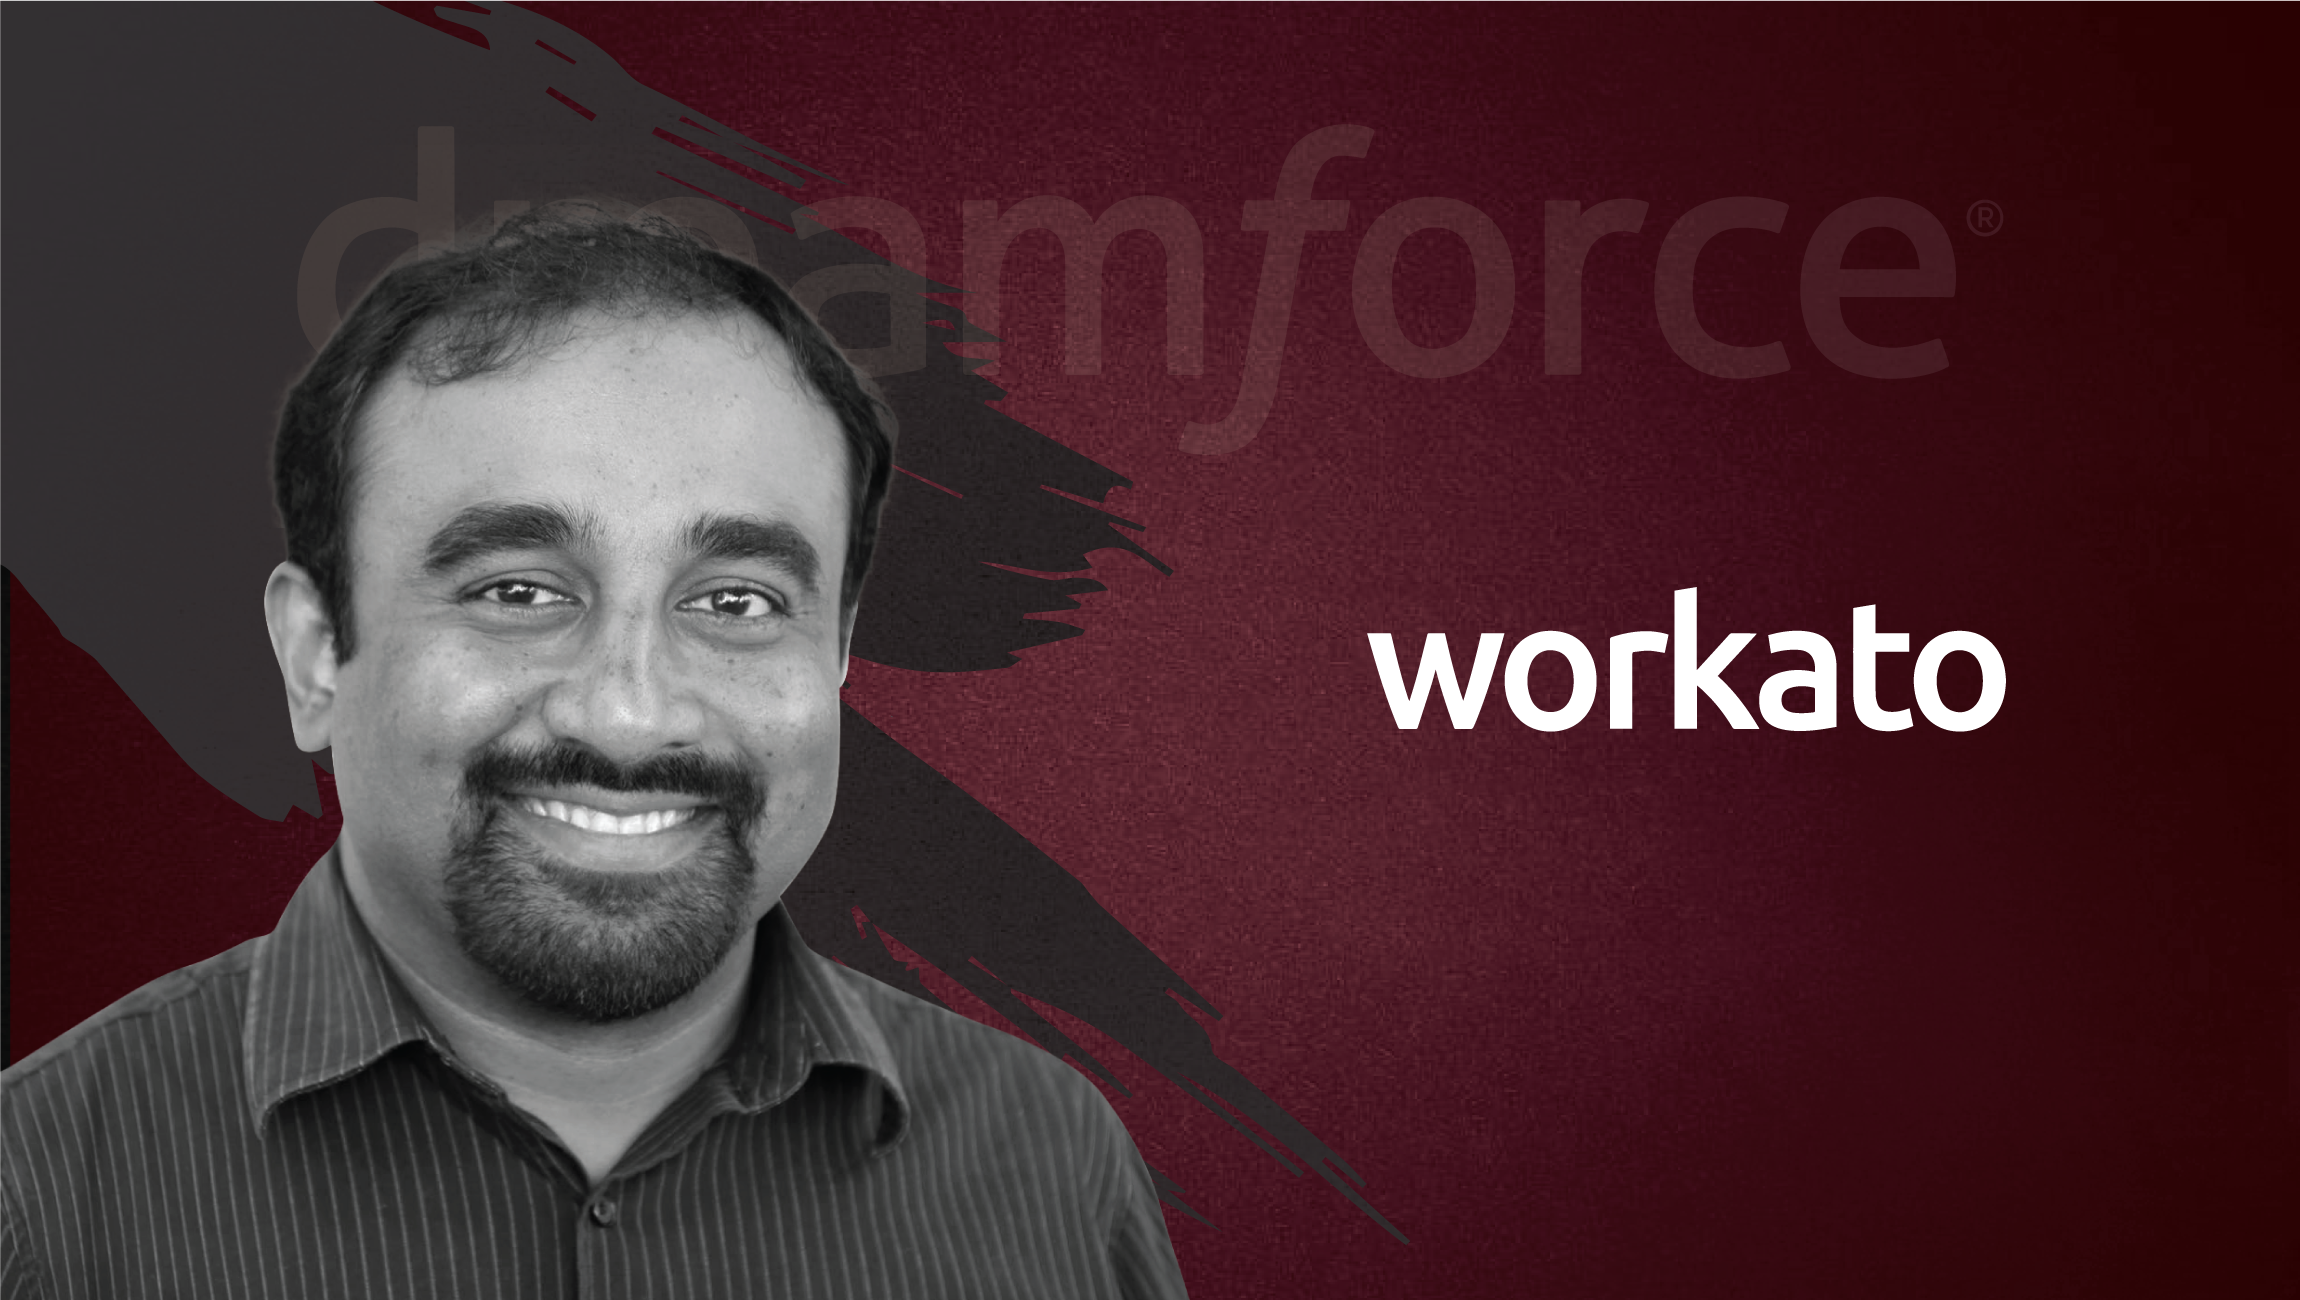 SalesTech Interview With Bhaskar Roy, Head of Growth at Workato